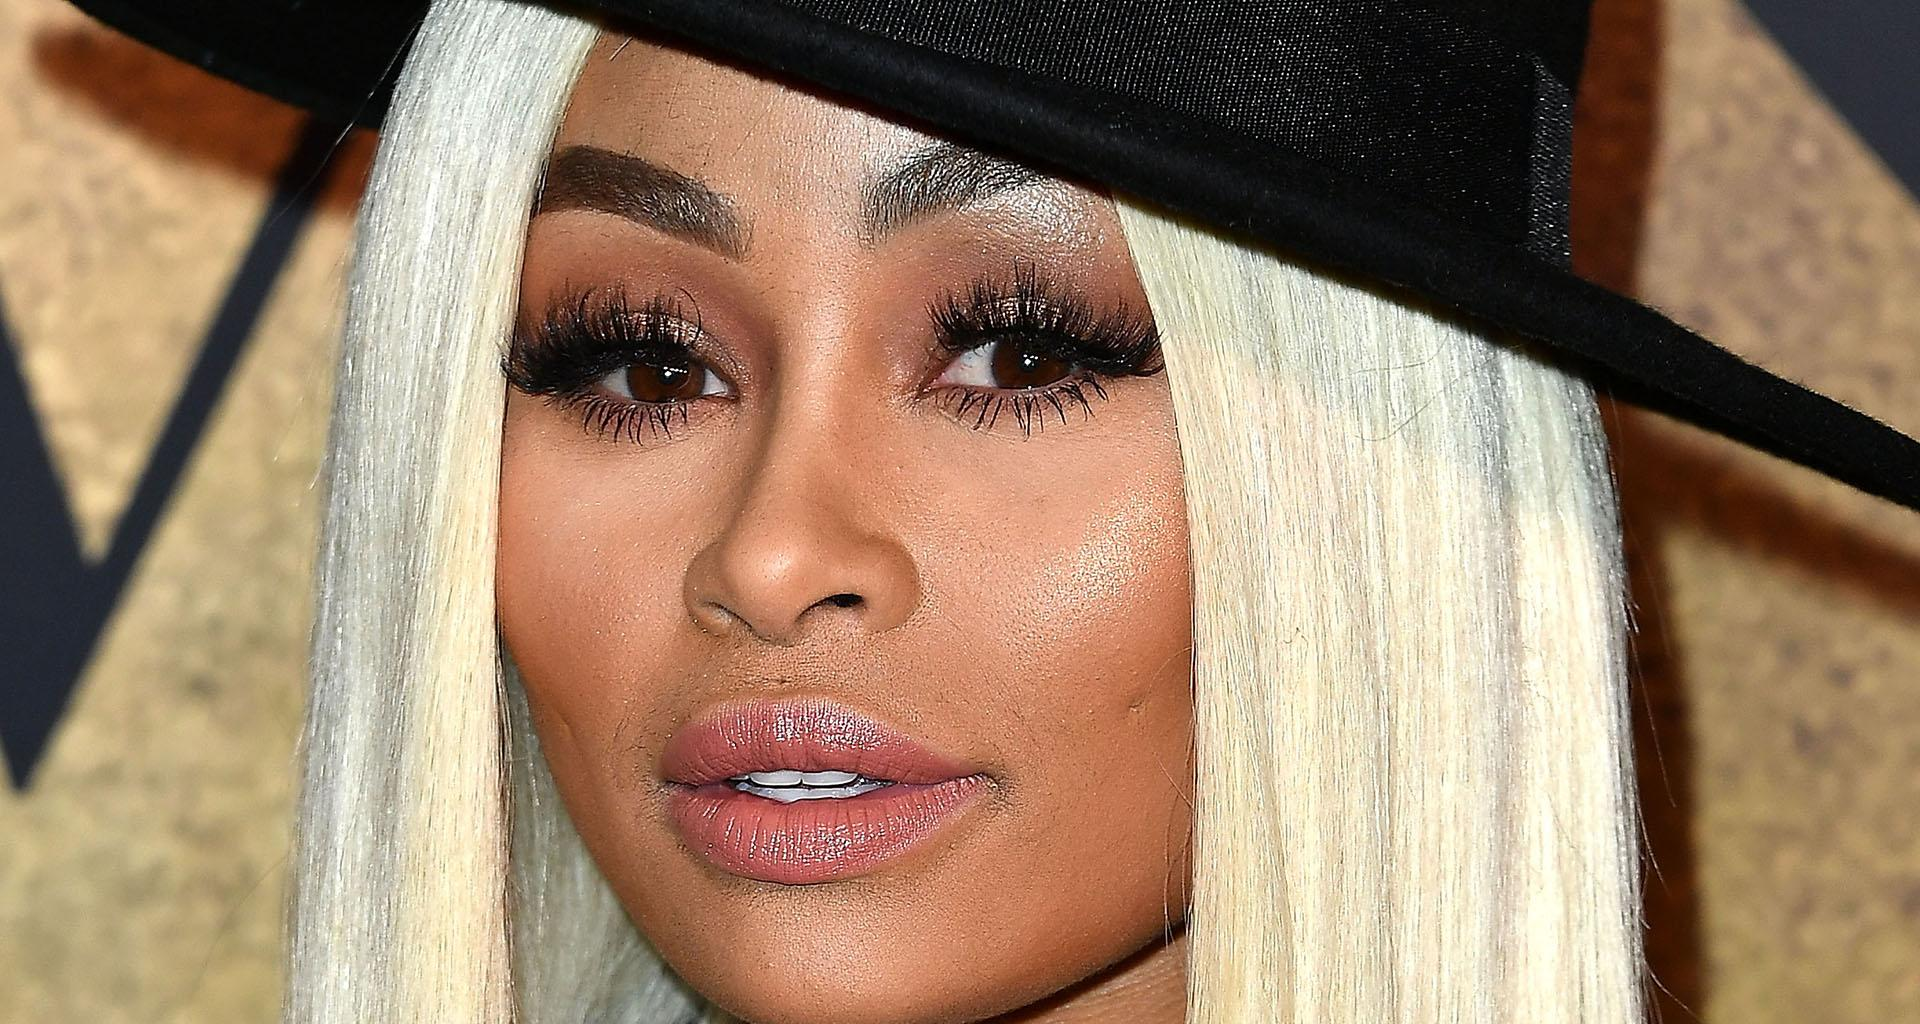 Blac Chyna Says She's Ready To Focus On Her Music